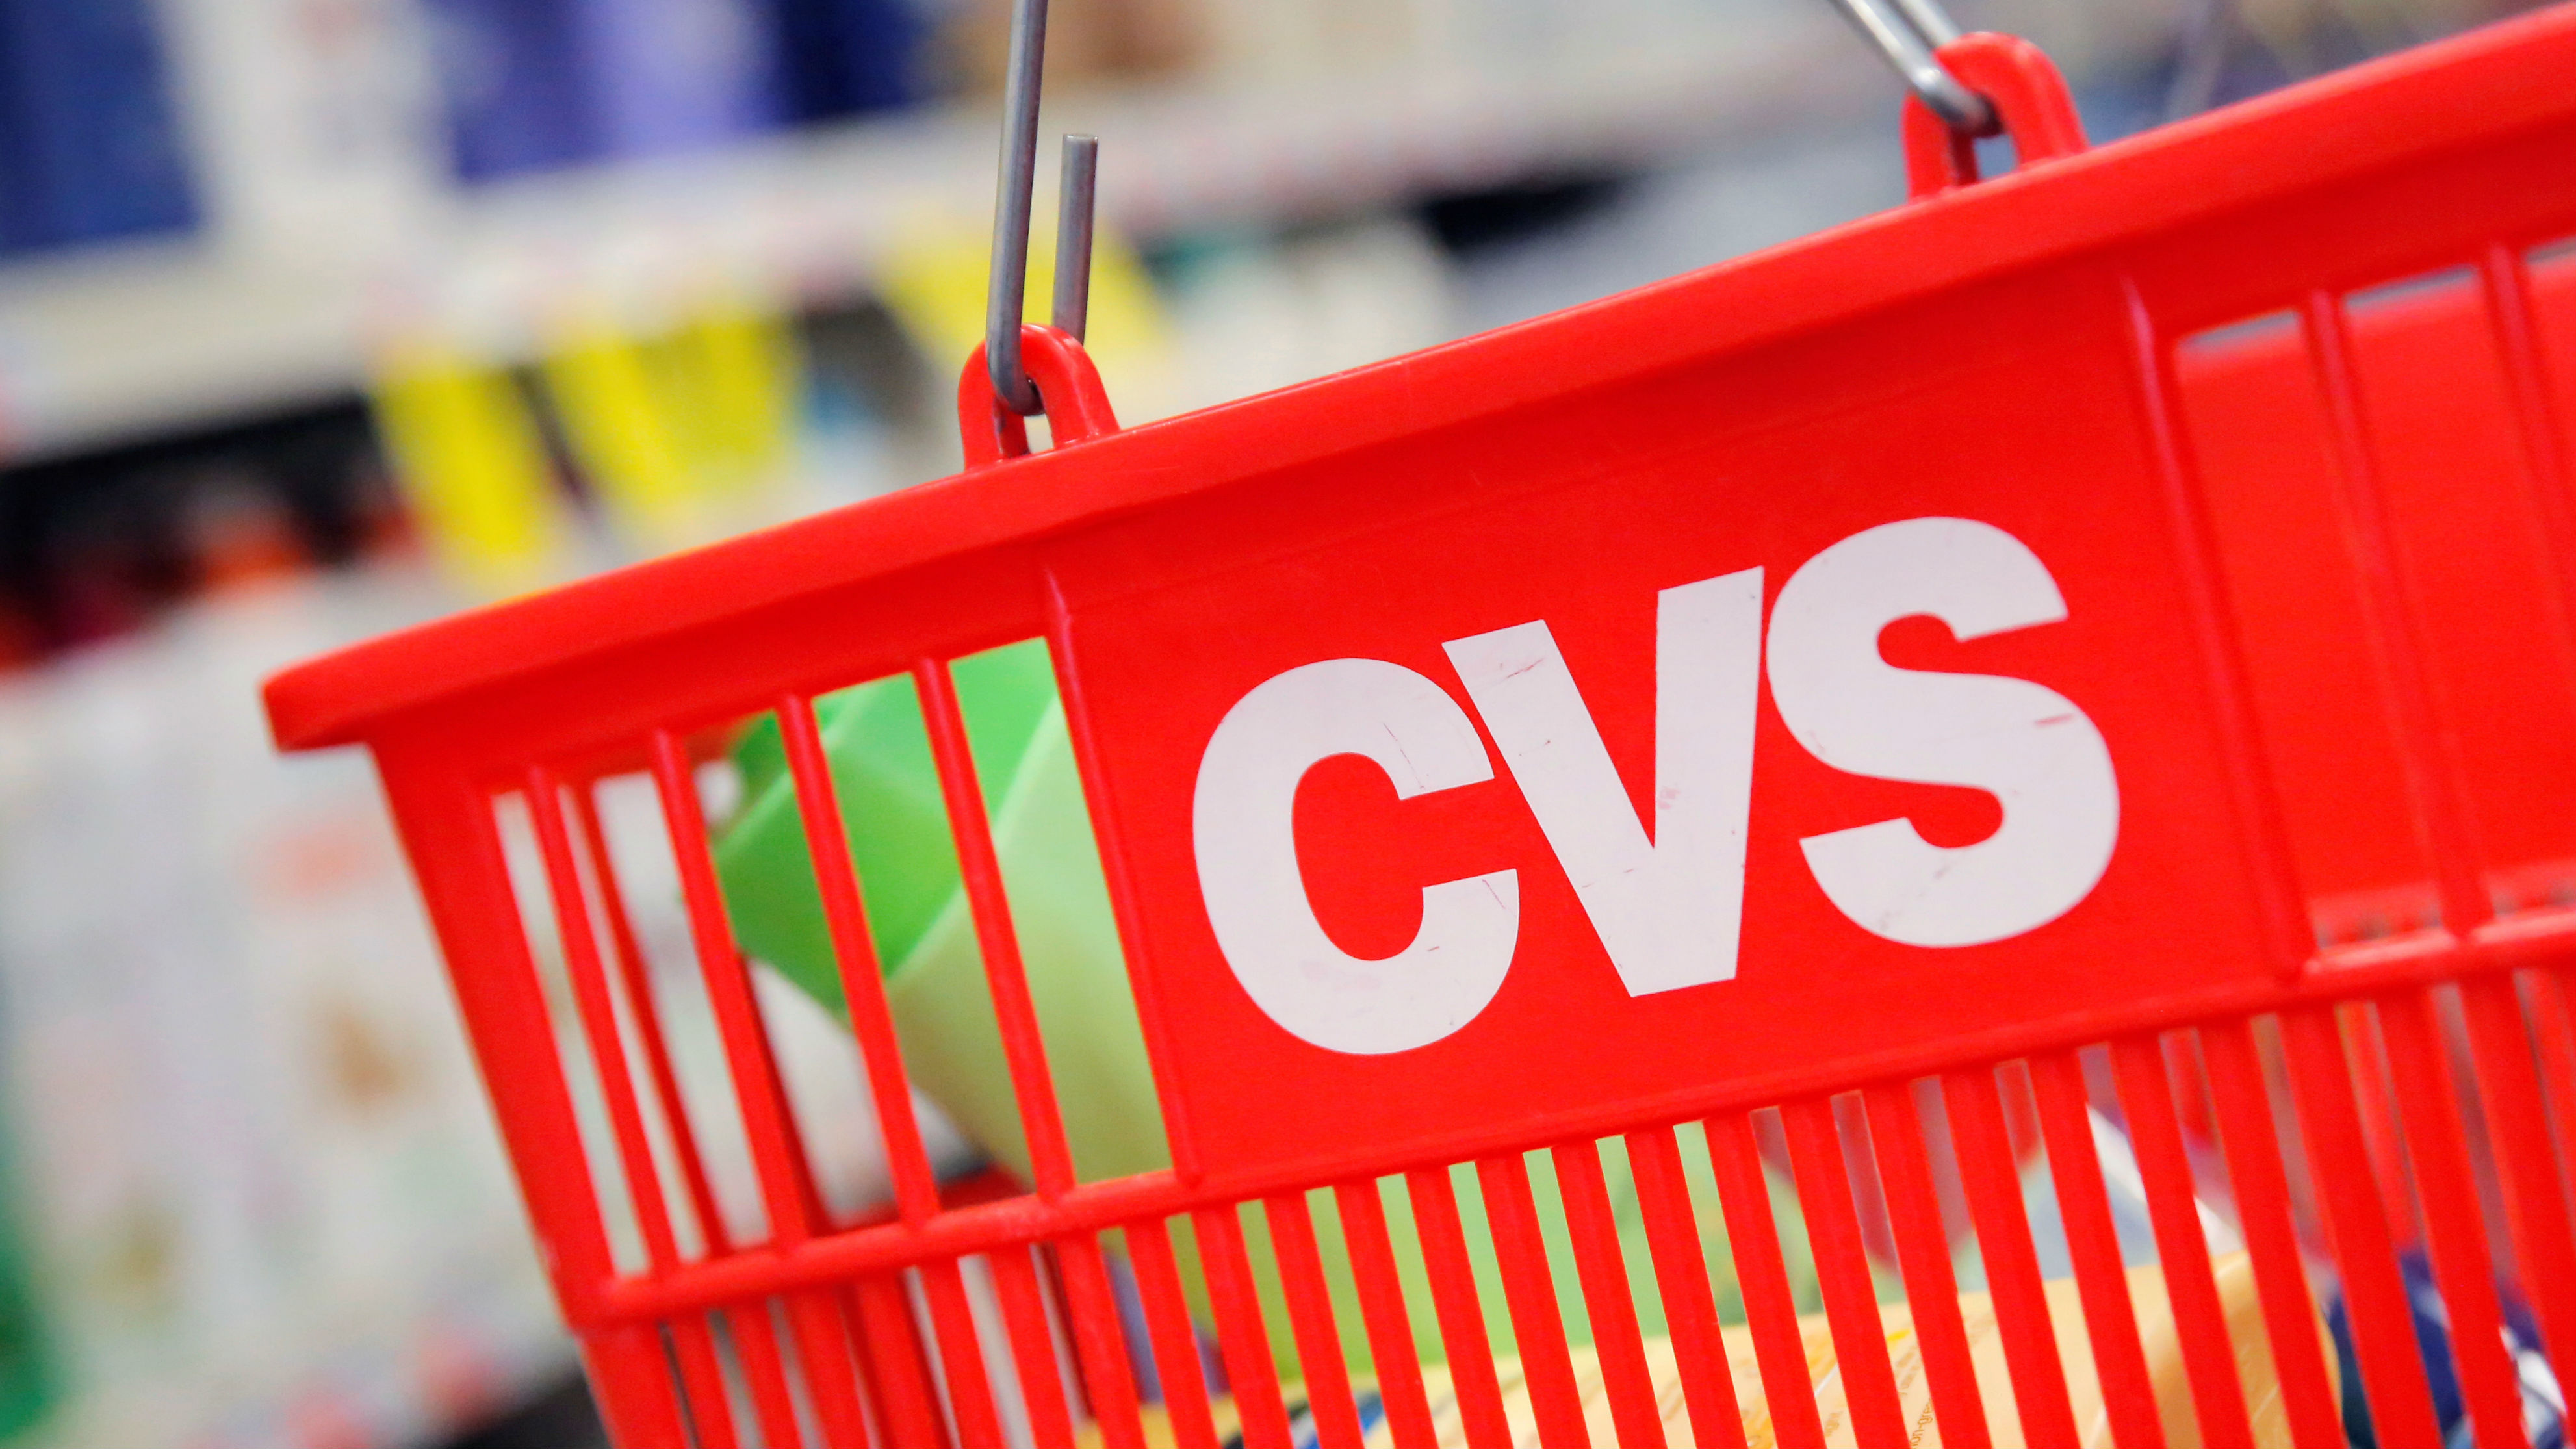 The CVS logo is seen at one of their stores in Manhattan, New York, U.S., August 1, 2016.